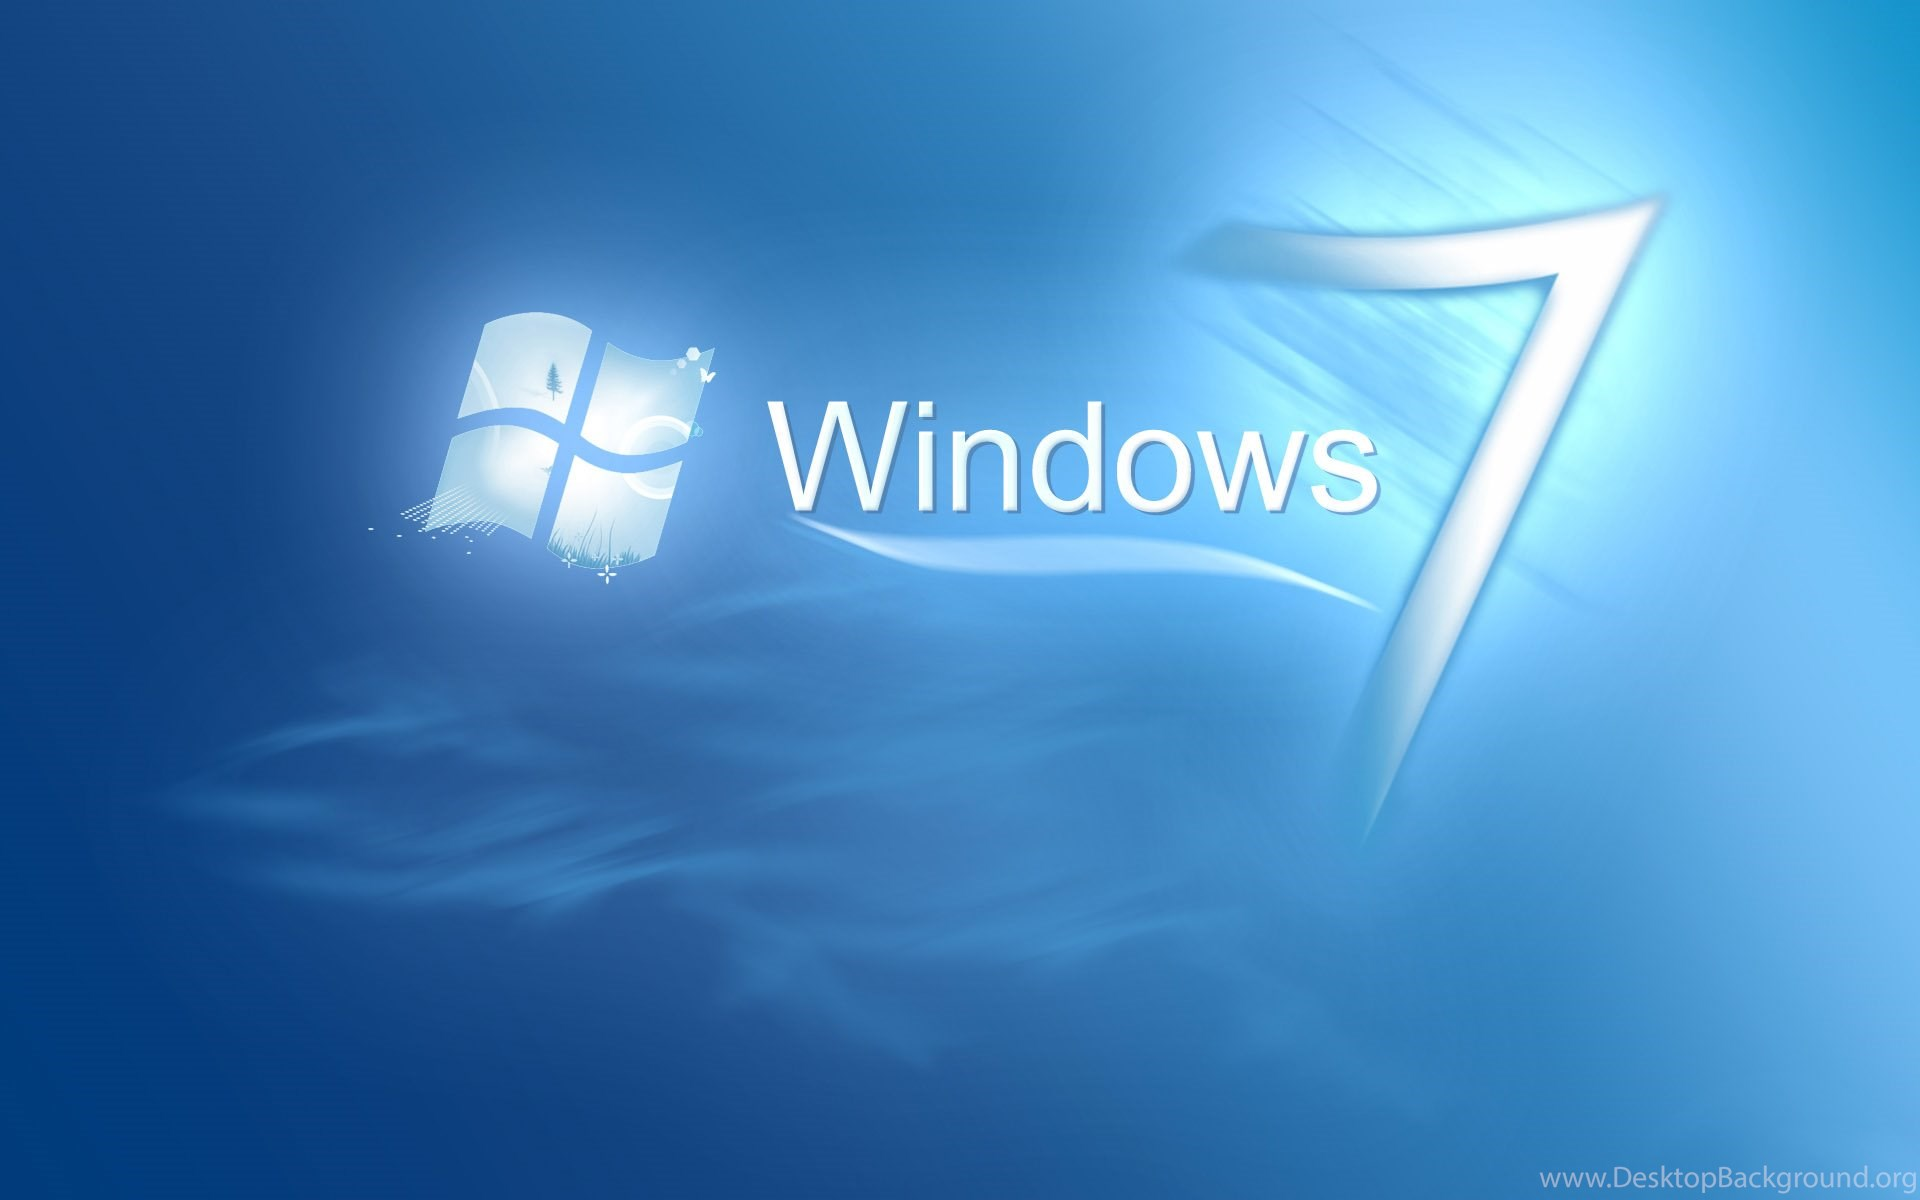 windows 7 wallpapers high quality resolution uncalke desktop